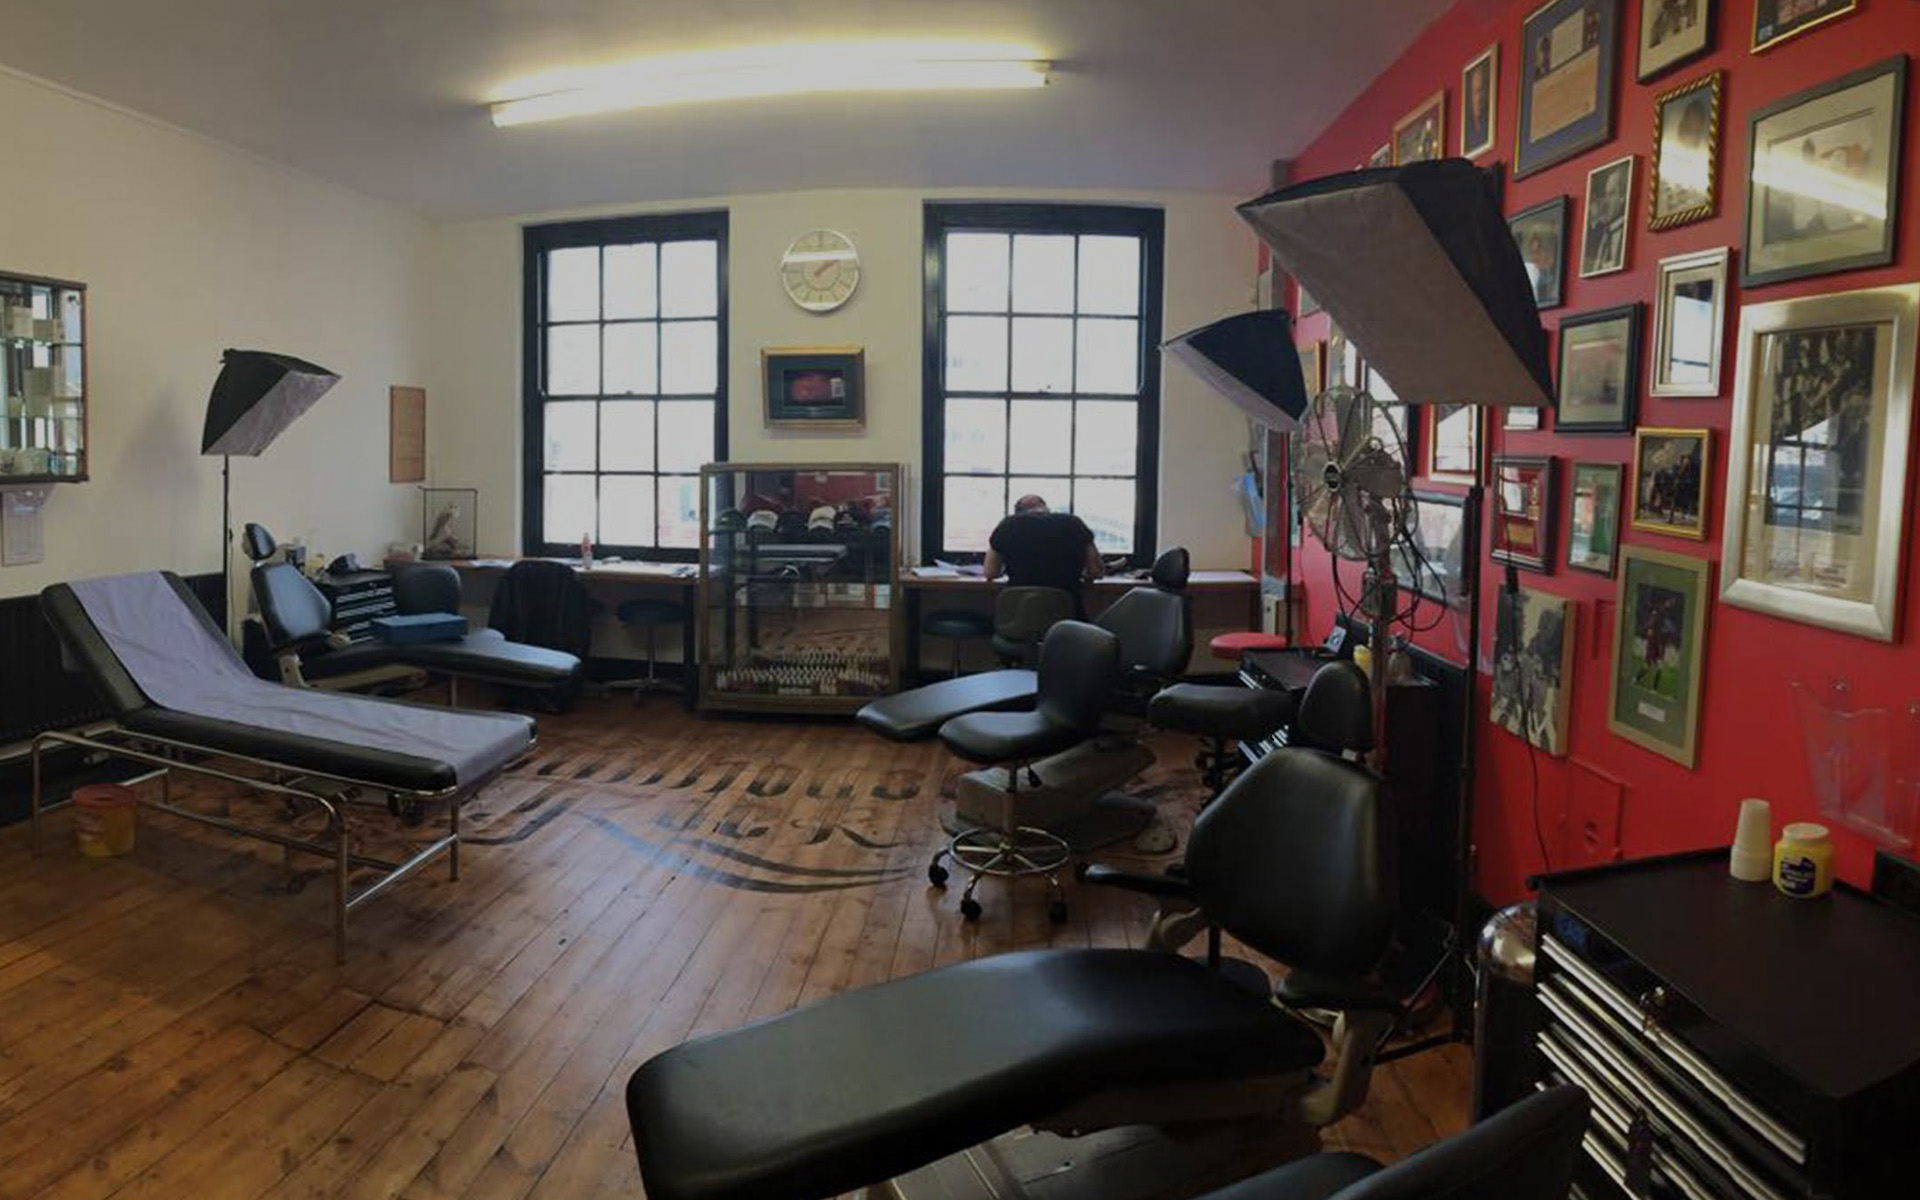 Danny's Tattoo Collective